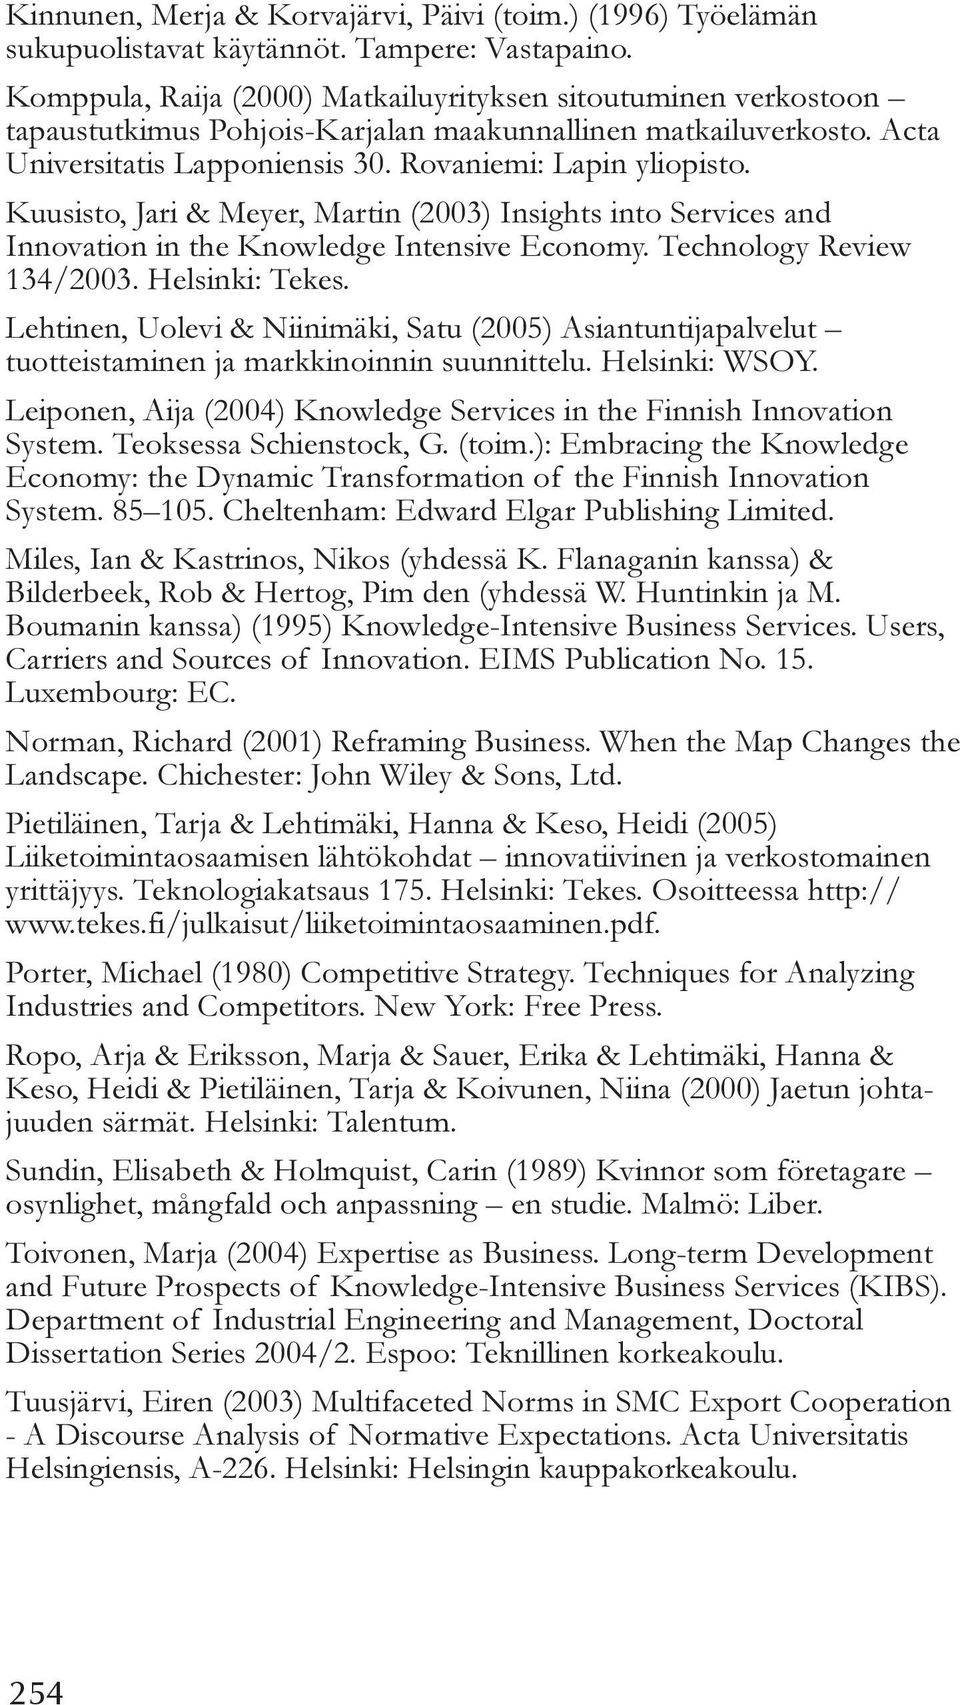 Kuusisto, Jari & Meyer, Martin (2003) Insights into Services and Innovation in the Knowledge Intensive Economy. Technology Review 134/2003. Helsinki: Tekes.